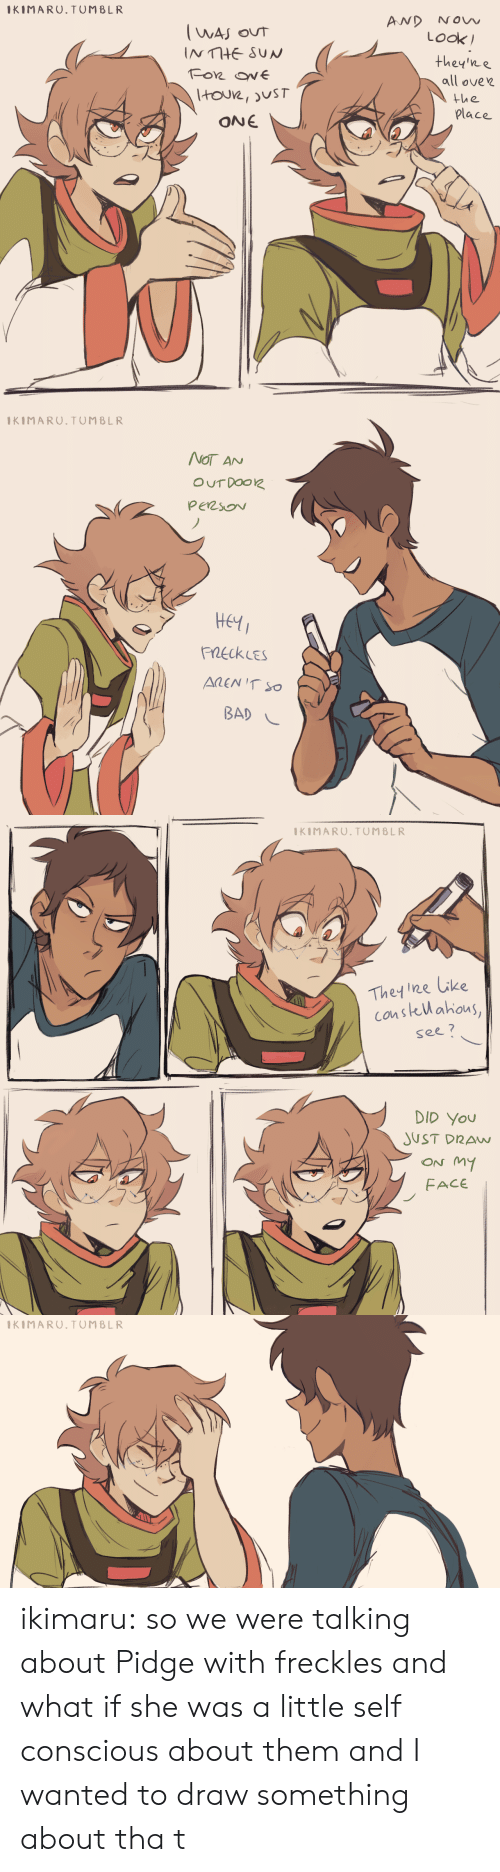 Bad, Target, and Tumblr: AND NOW  IKIMARU.TUMBLR  Look  they'ne  all ovew  the  place  ONE   KIMARU.TUMBLR  NOT AN  Heti  FnekLEs  BAD -   KIMARU.TUMBLR  Thet ne like  see?  DID You  JUST DRAN  ON My  FACE   KIMARU.TUMBLR ikimaru: so we were talking about Pidge with freckles and what if she was a little self conscious about them and I wanted to draw something about tha t